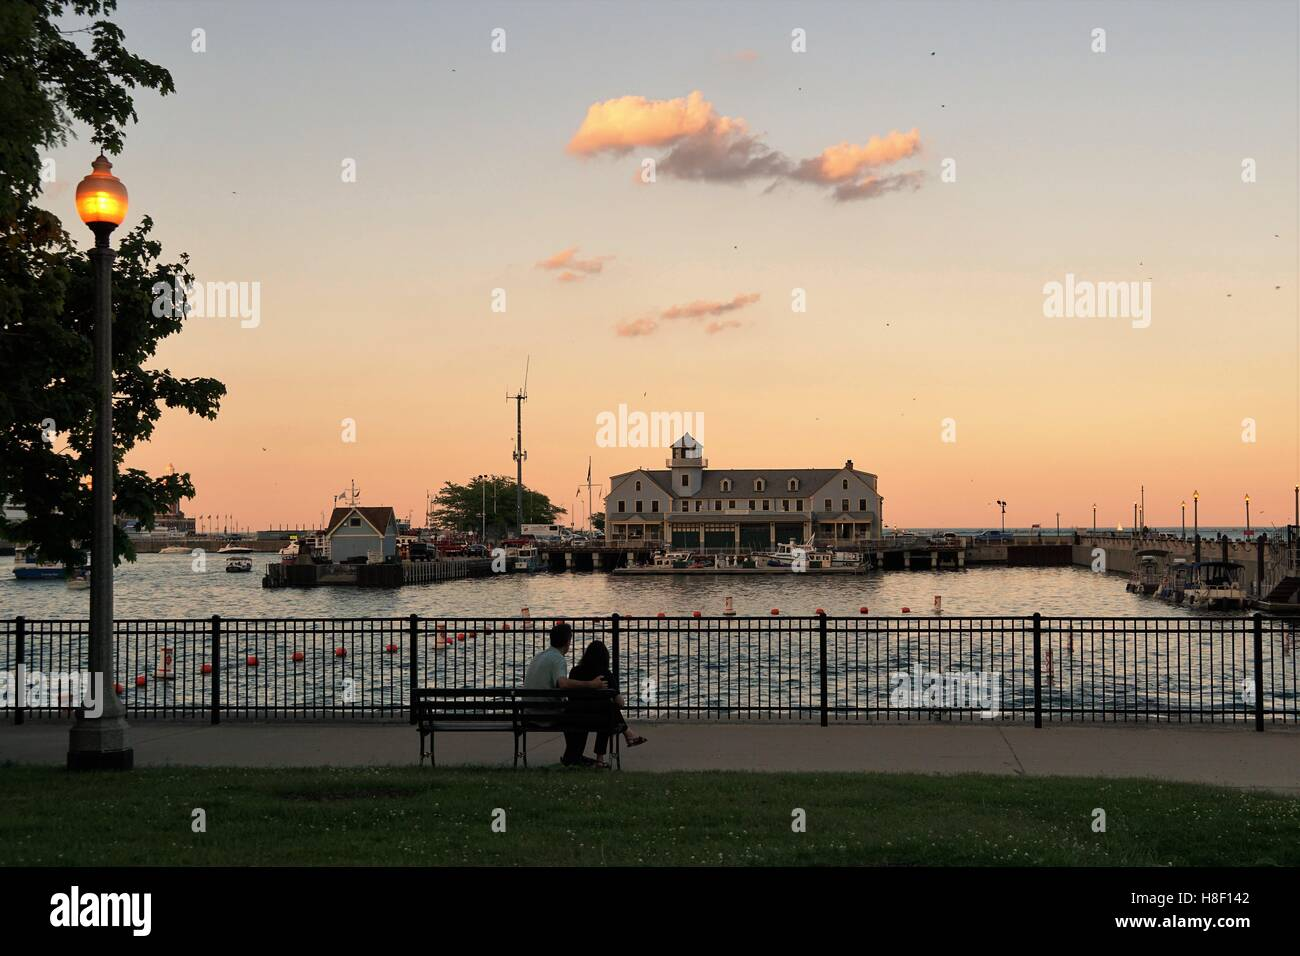 Couple Sitting Watching Sunset Chicago Marine Safety Station / Breakwater Access / Navy Pier / Dusable Harbor - Stock Image